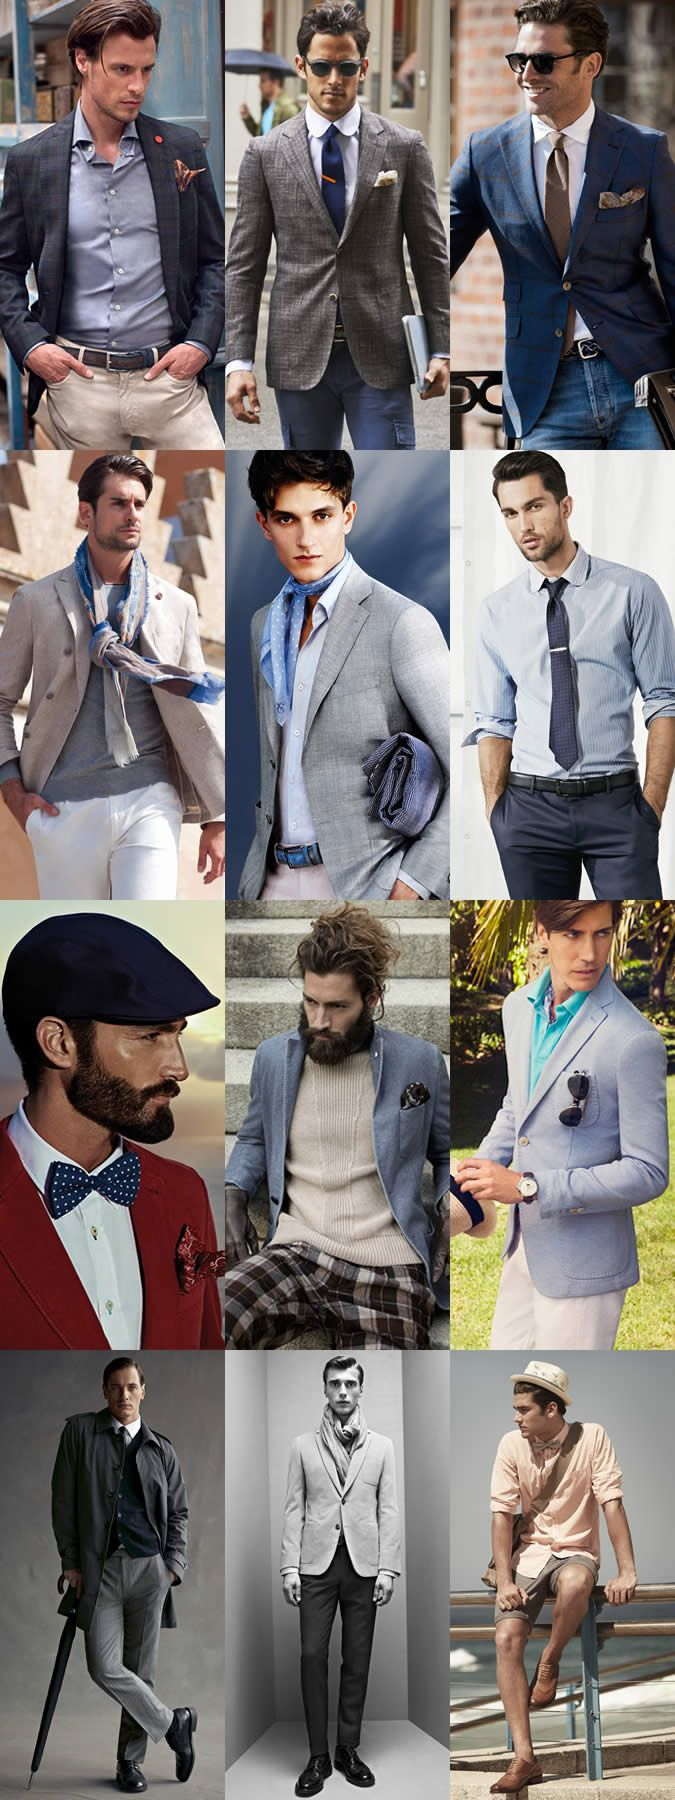 Which of these Gentleman do you think is best dressed?